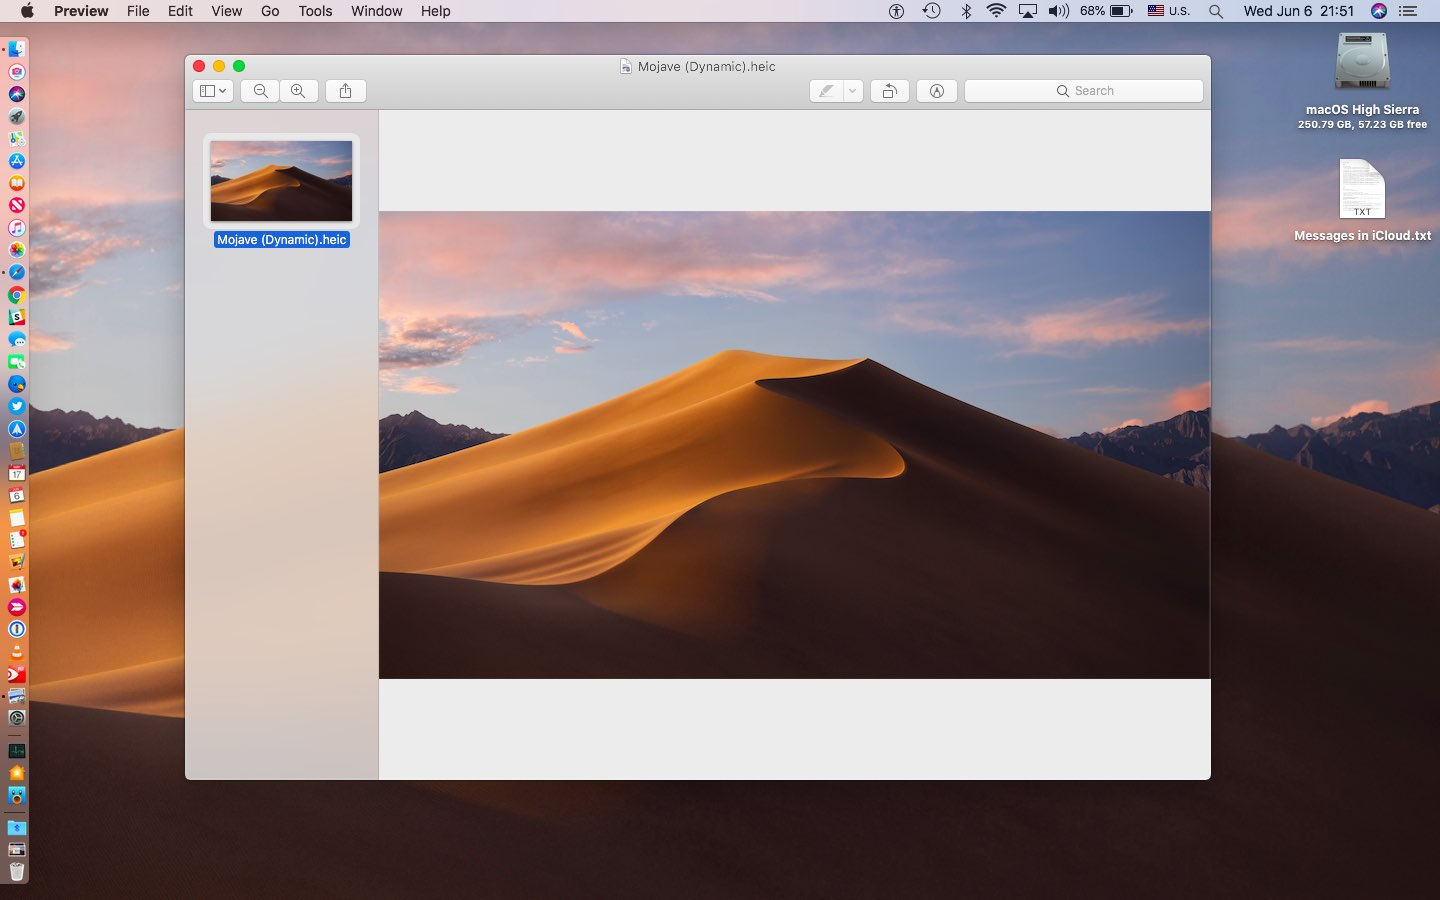 macOS's Mojave dynamic wallpaper HEIC file in Preview